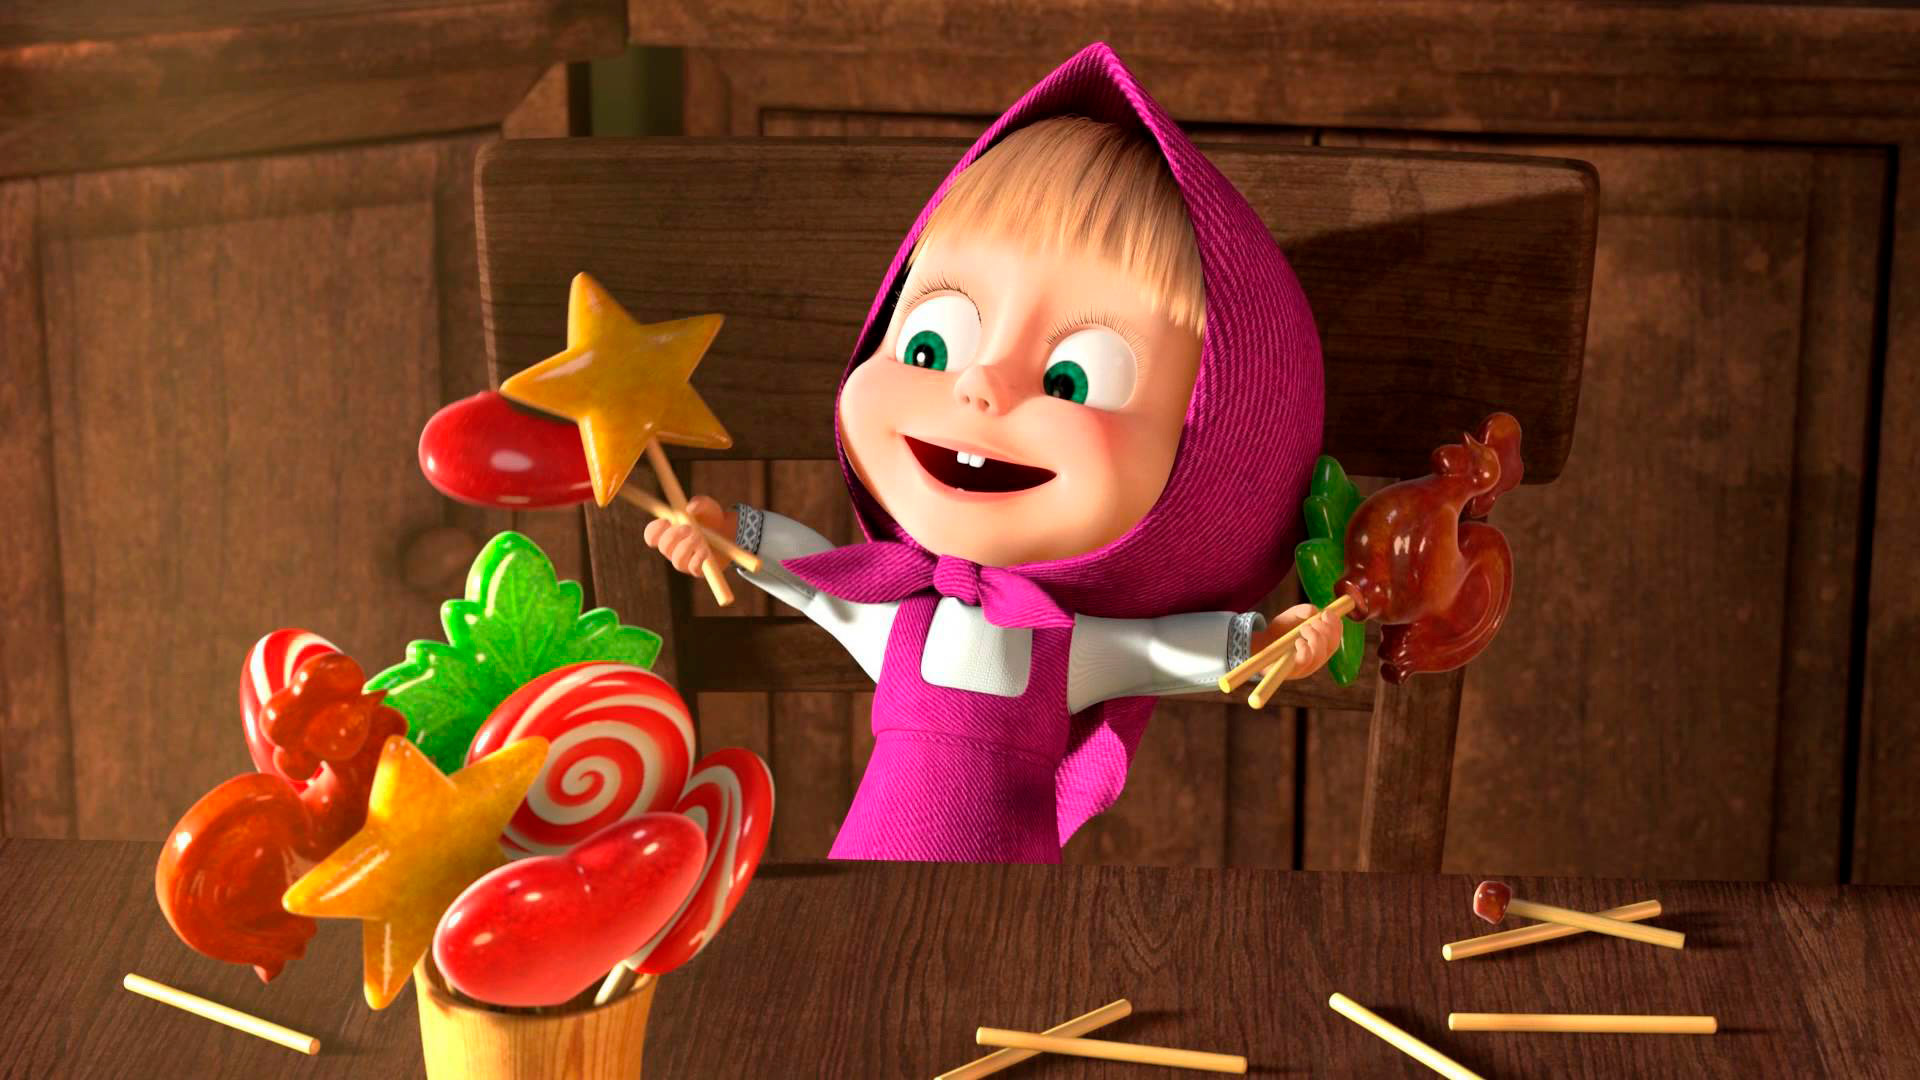 5 Reasons To Watch The Russian Superhit Show Masha And The Bear With Your Kids Russia Beyond